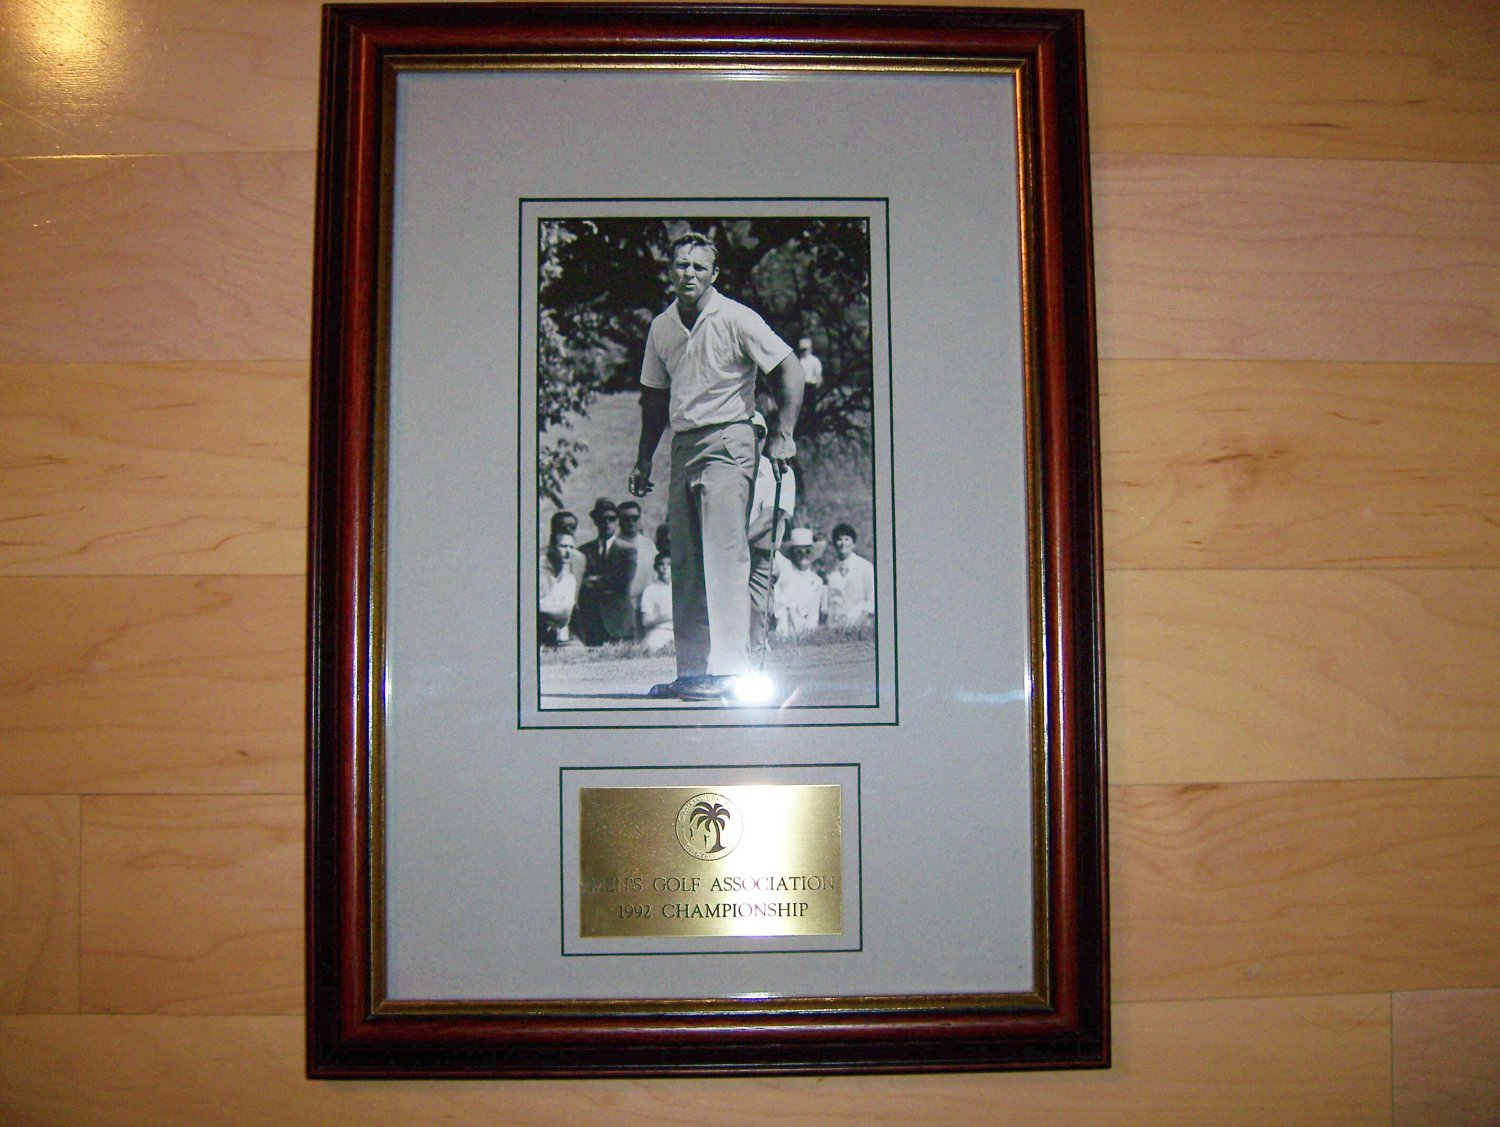 Arnie Palmer Framed Photo In Younger Days BNK1160